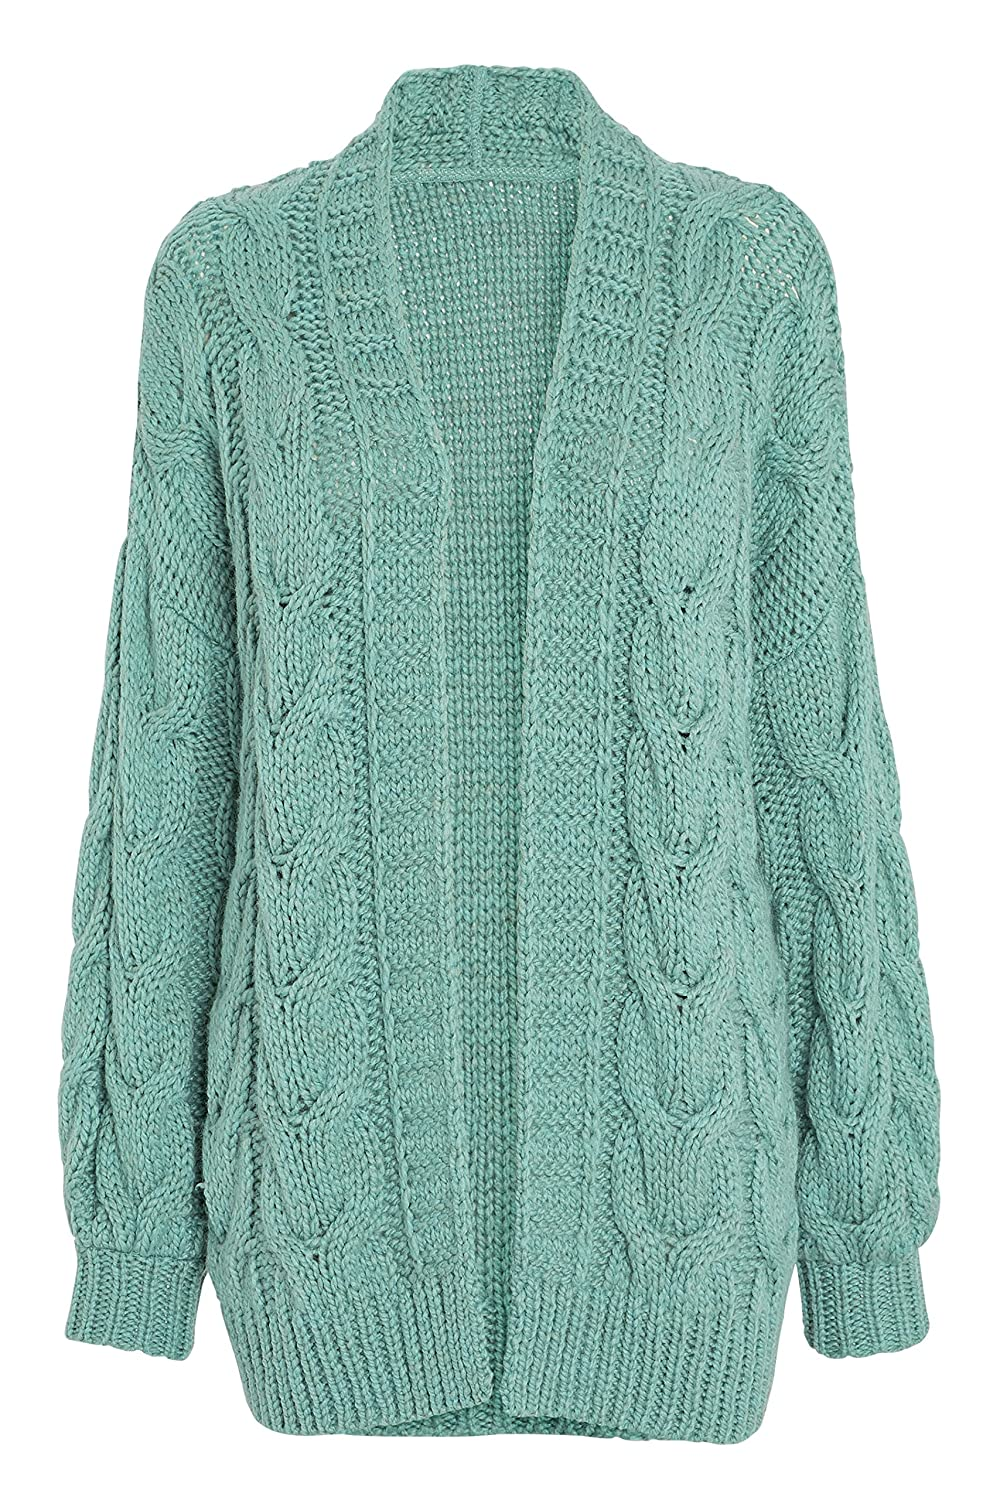 next Damen Grobstrick Cardigan Mit Zopfmuster Grün L: Amazon